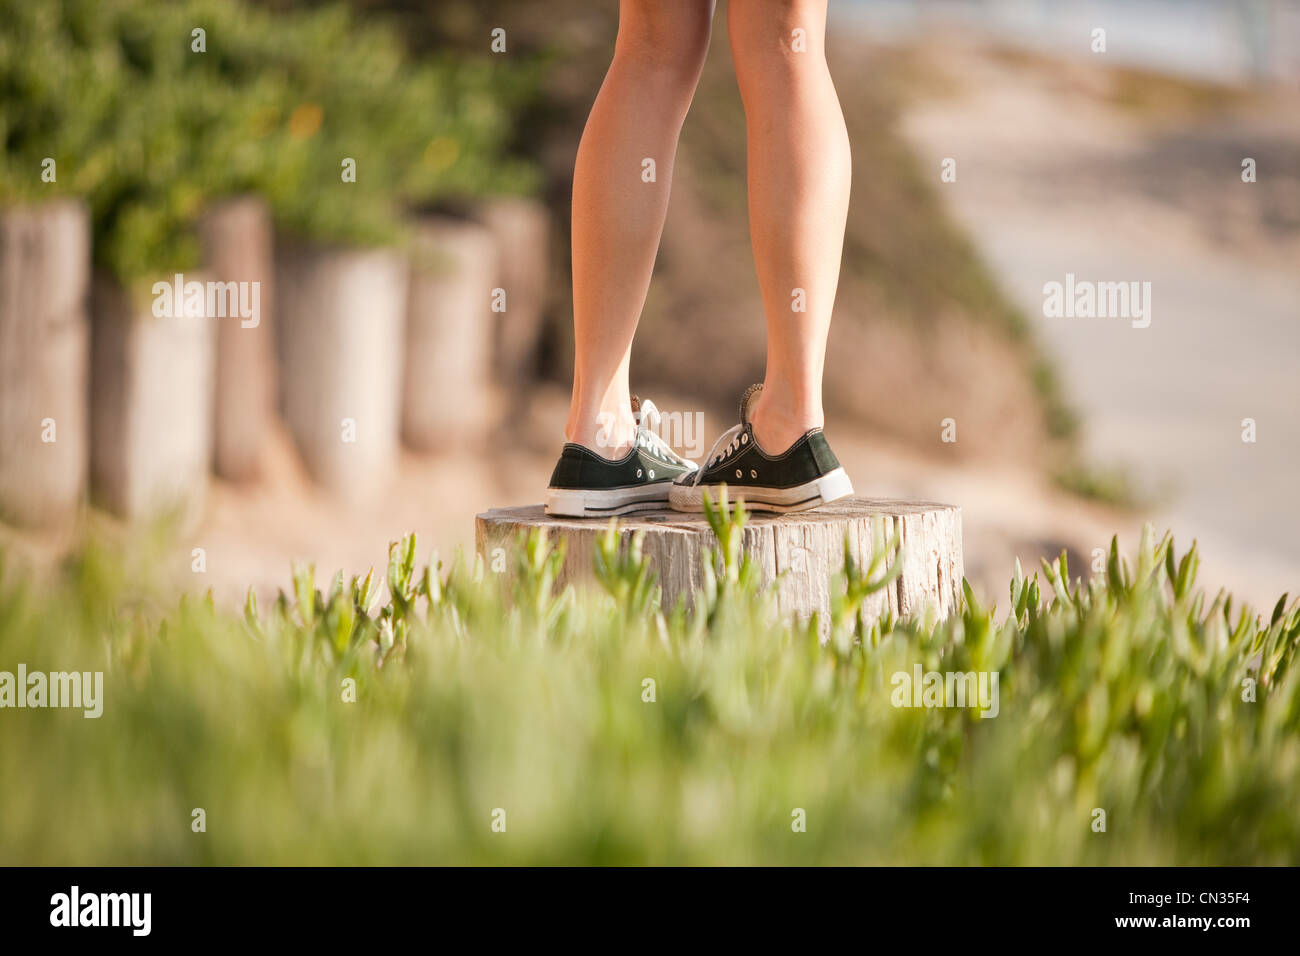 Young woman walking on wooden post - Stock Image